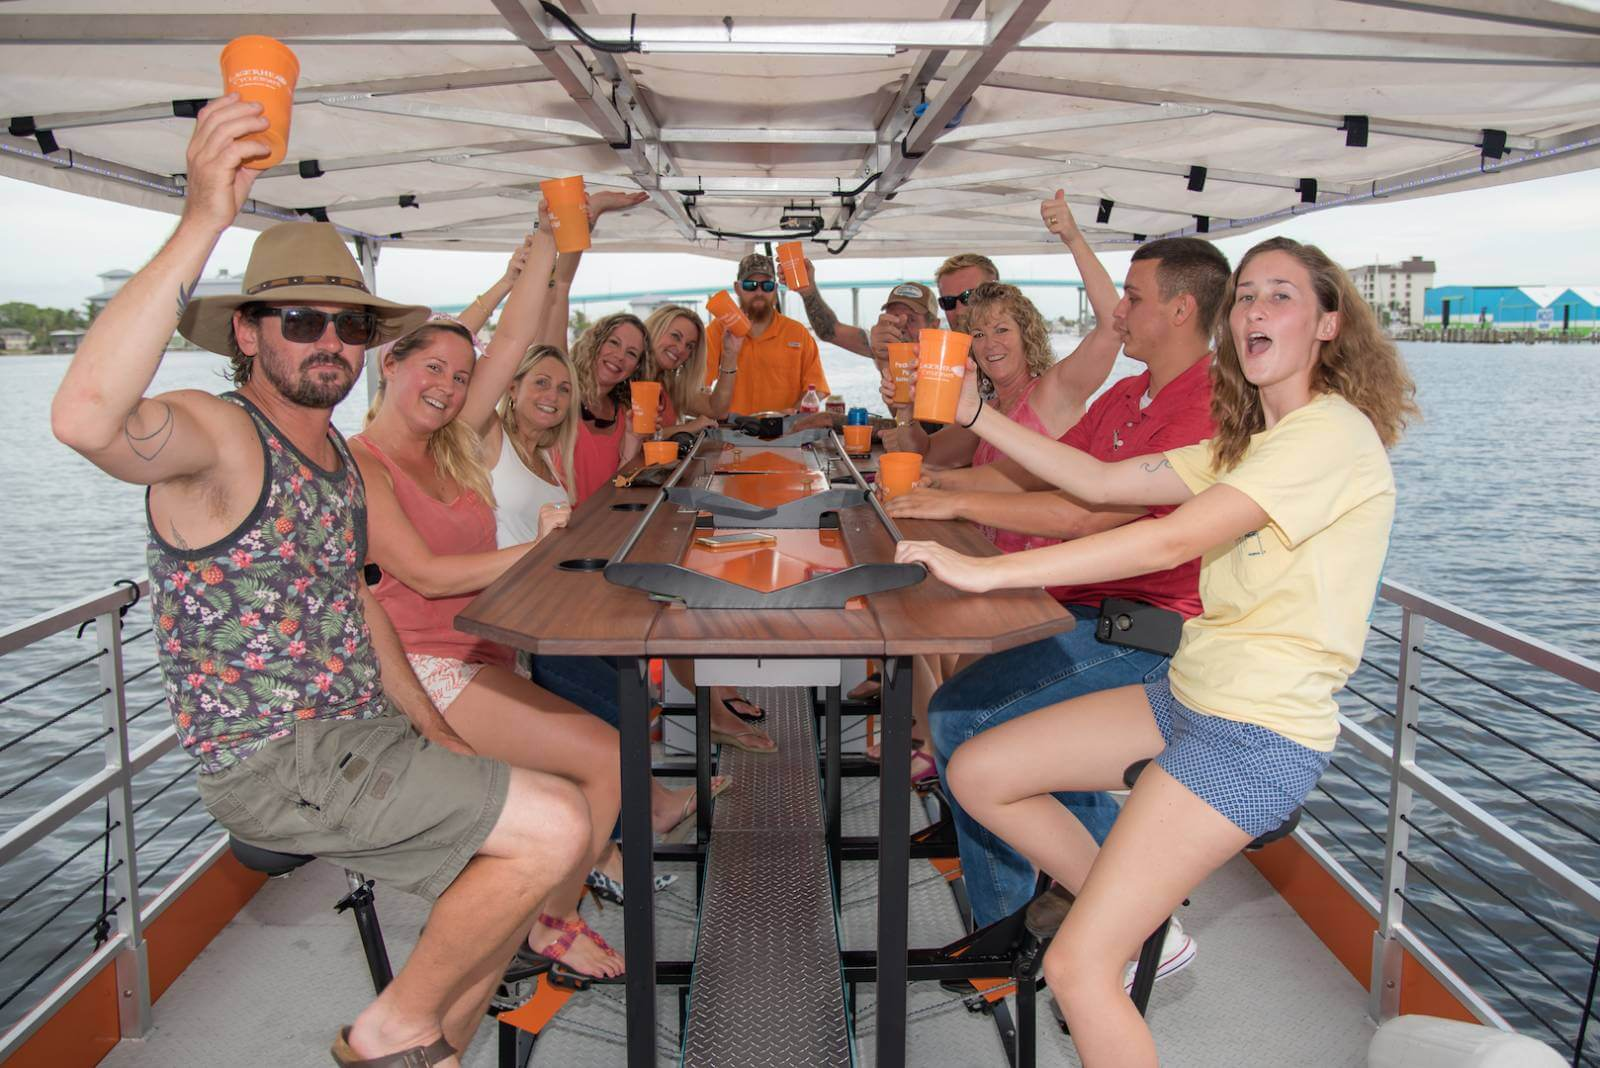 A fun pedal power cruise that includes a stop at a Fort Myers Beach bar/restaurant. Pedal at your own pace while your captain navigates the boat on this adventurous and unique tour. #FortMyersBeach